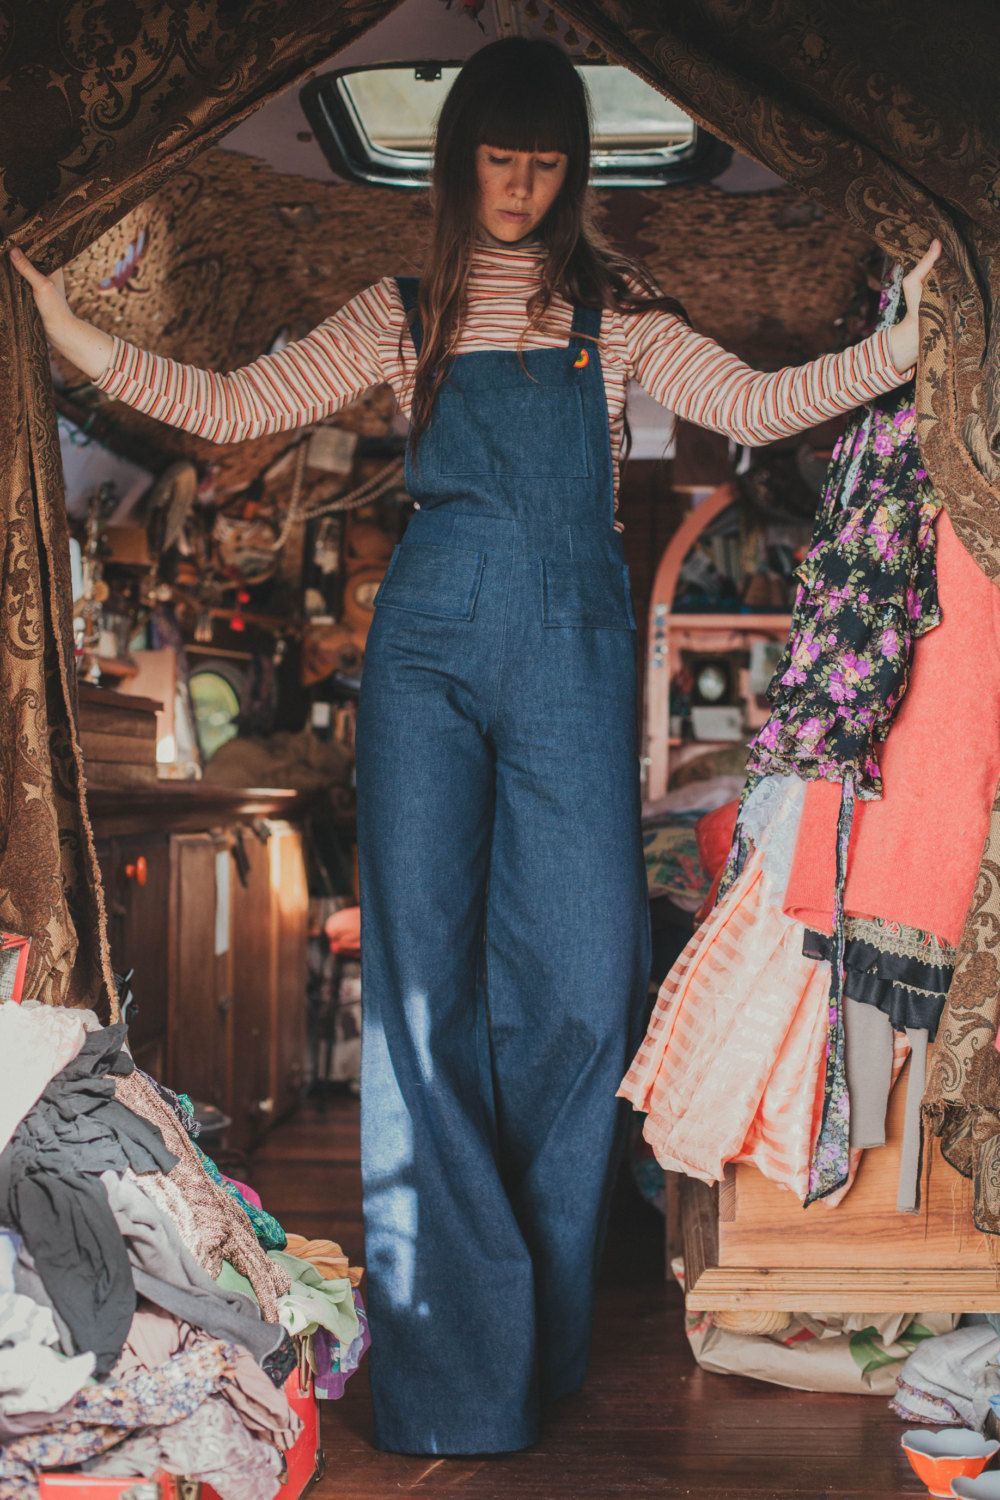 Moon Flower Overalls Handmade Vintage Style Bell Bottom Denim Overalls Custom Made With Cone Denim 70s Inspired Fashion Fashion Style